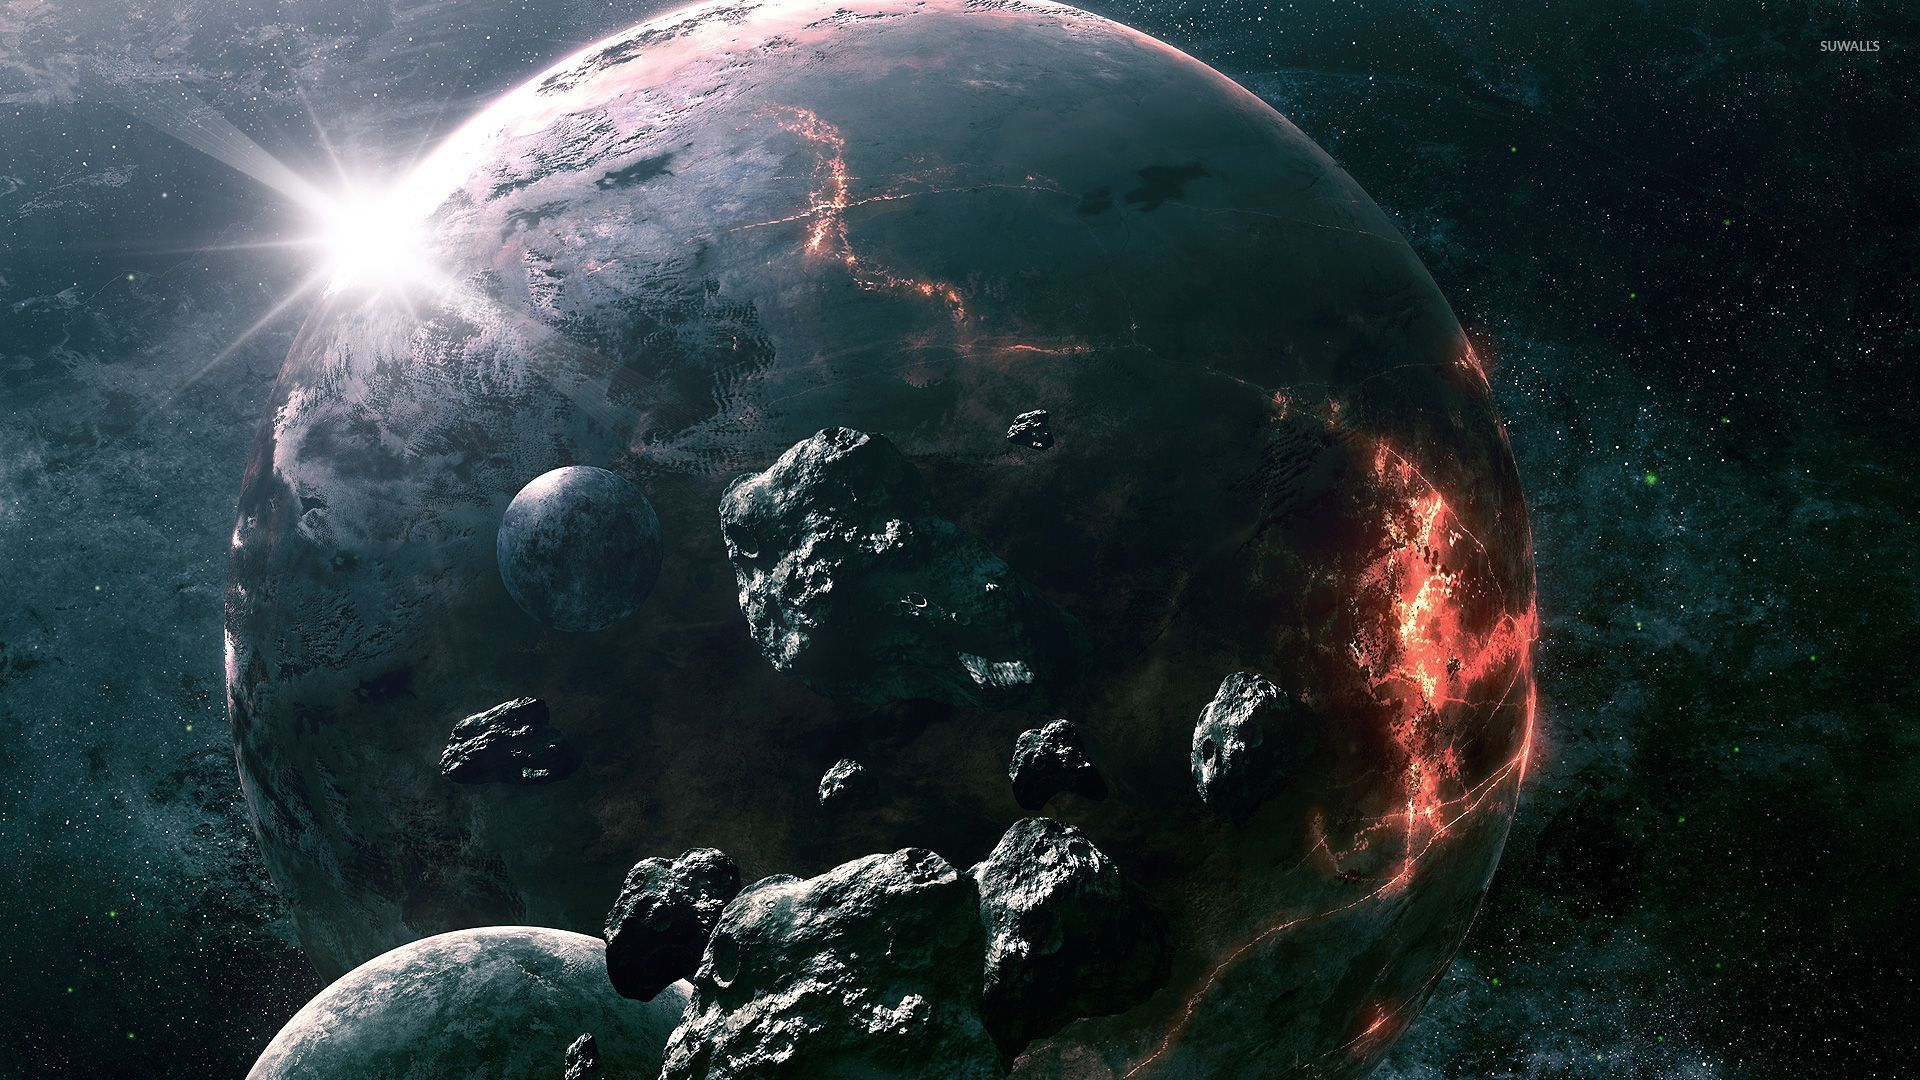 Meteorite circling the imploding planet wallpapers